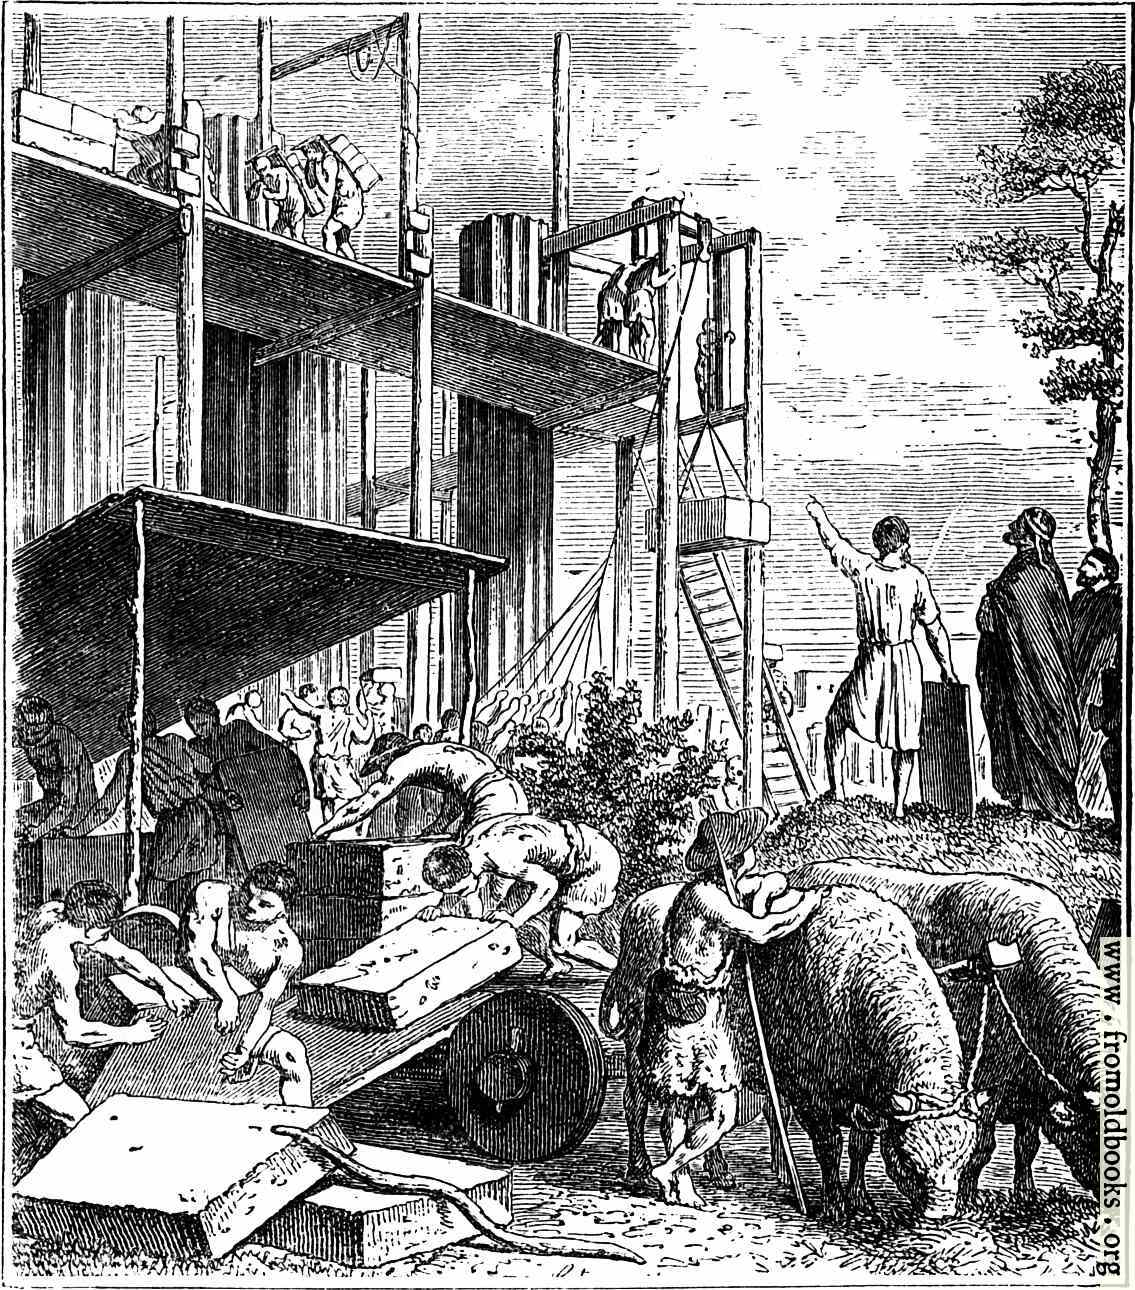 slavery in rome In using slave labour, the romans were perpetuating an institution which had existed in egypt since at least 2600 bc, and had been carried on under the empires of china, india, babylon, and by the greeks quiz on slaves in ancient rome.